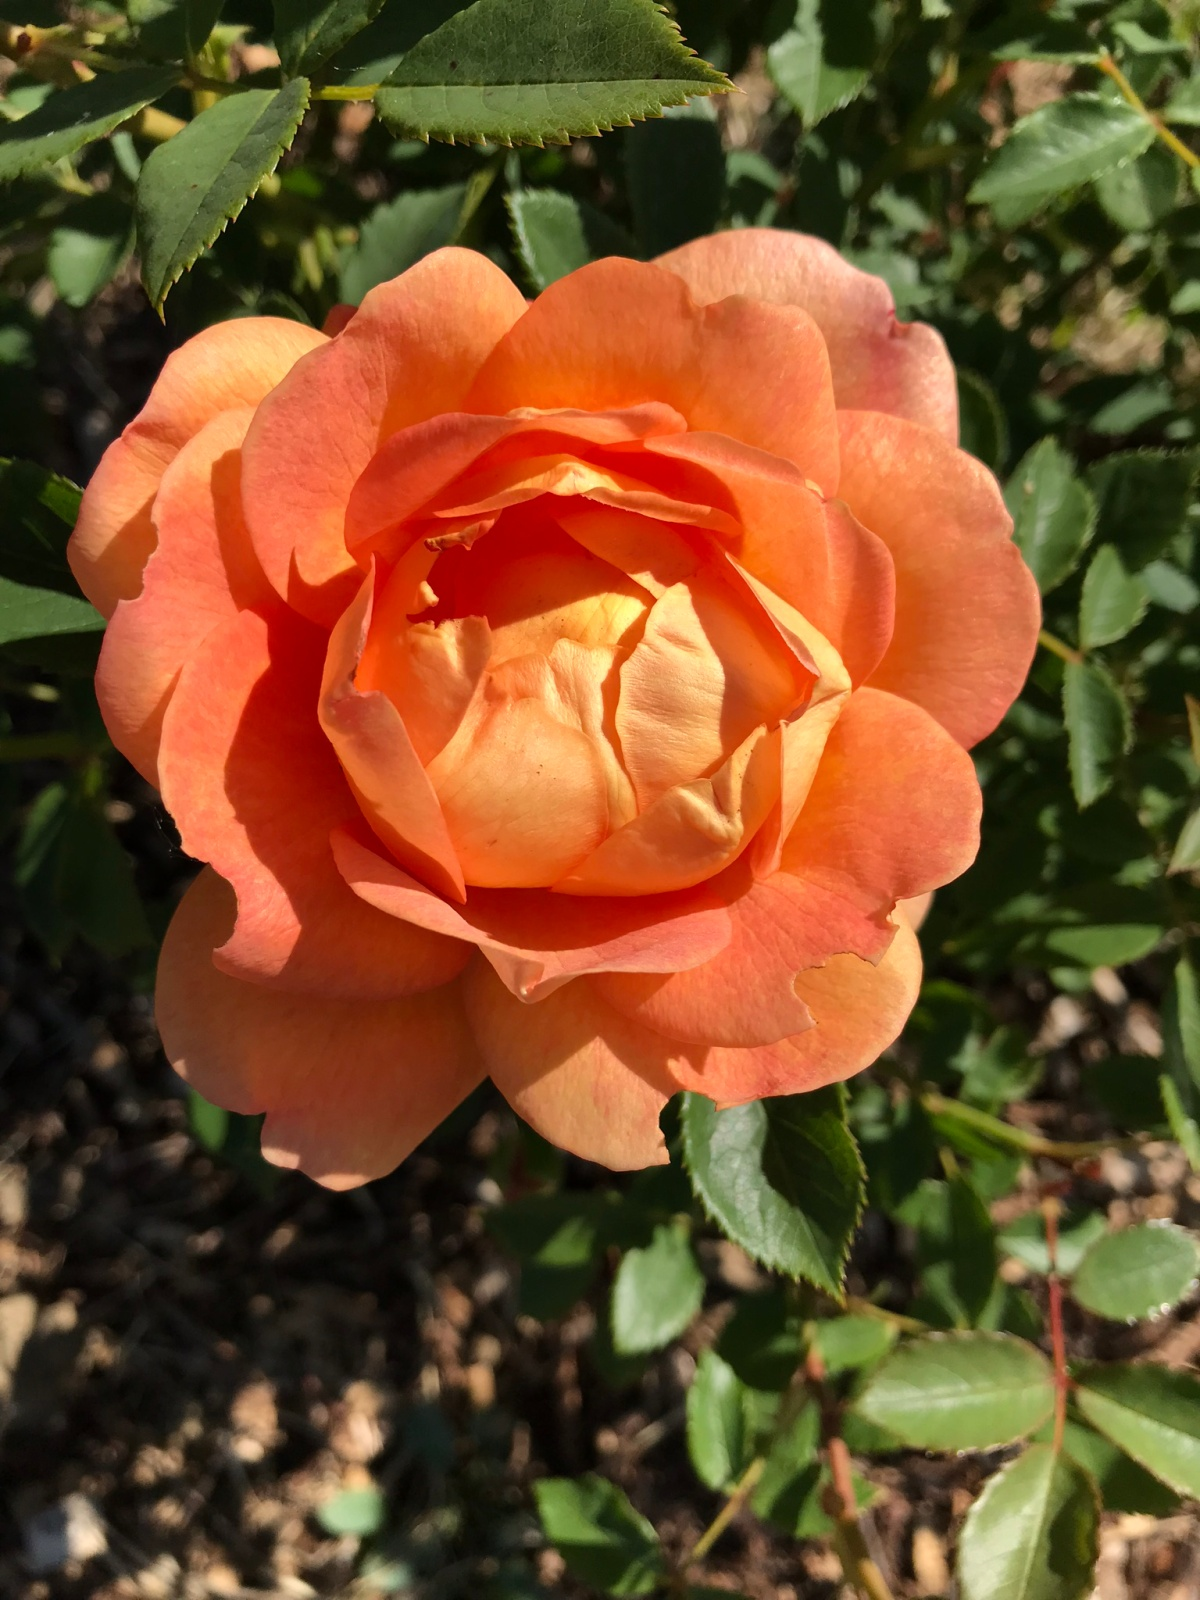 The rose garden: planted in January, flowering byMay